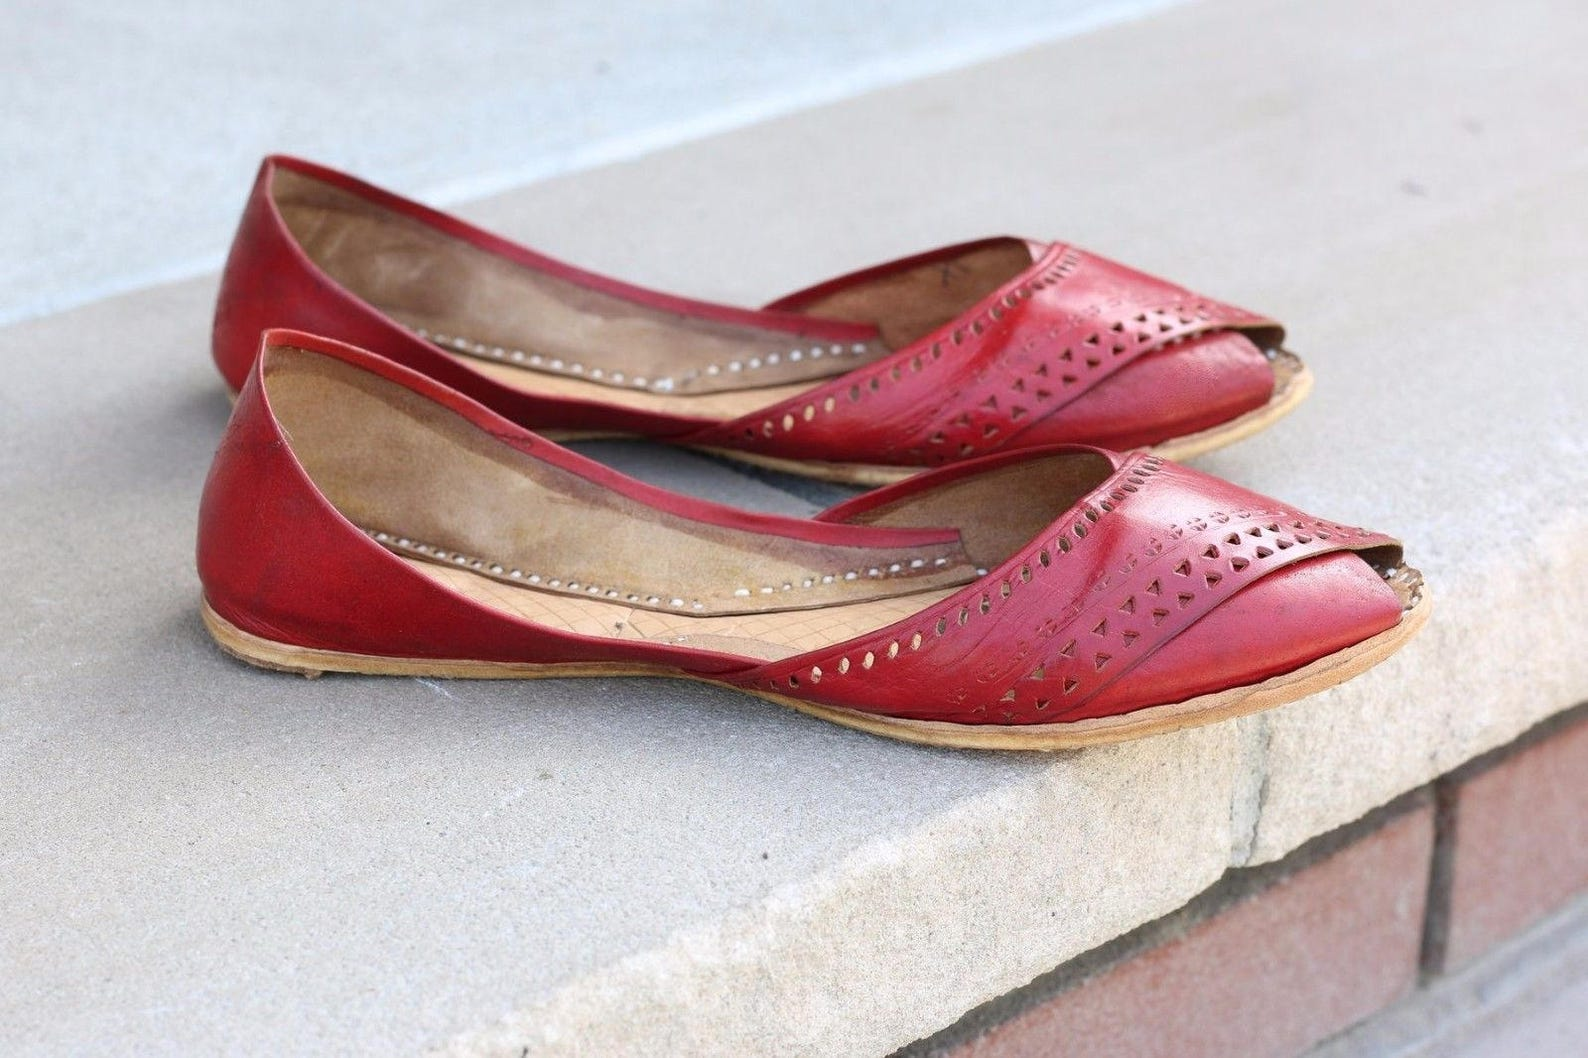 afeith decontra by naraam : handmade slip on all genuine leather ballet flats for women moroccan style khussa open toe